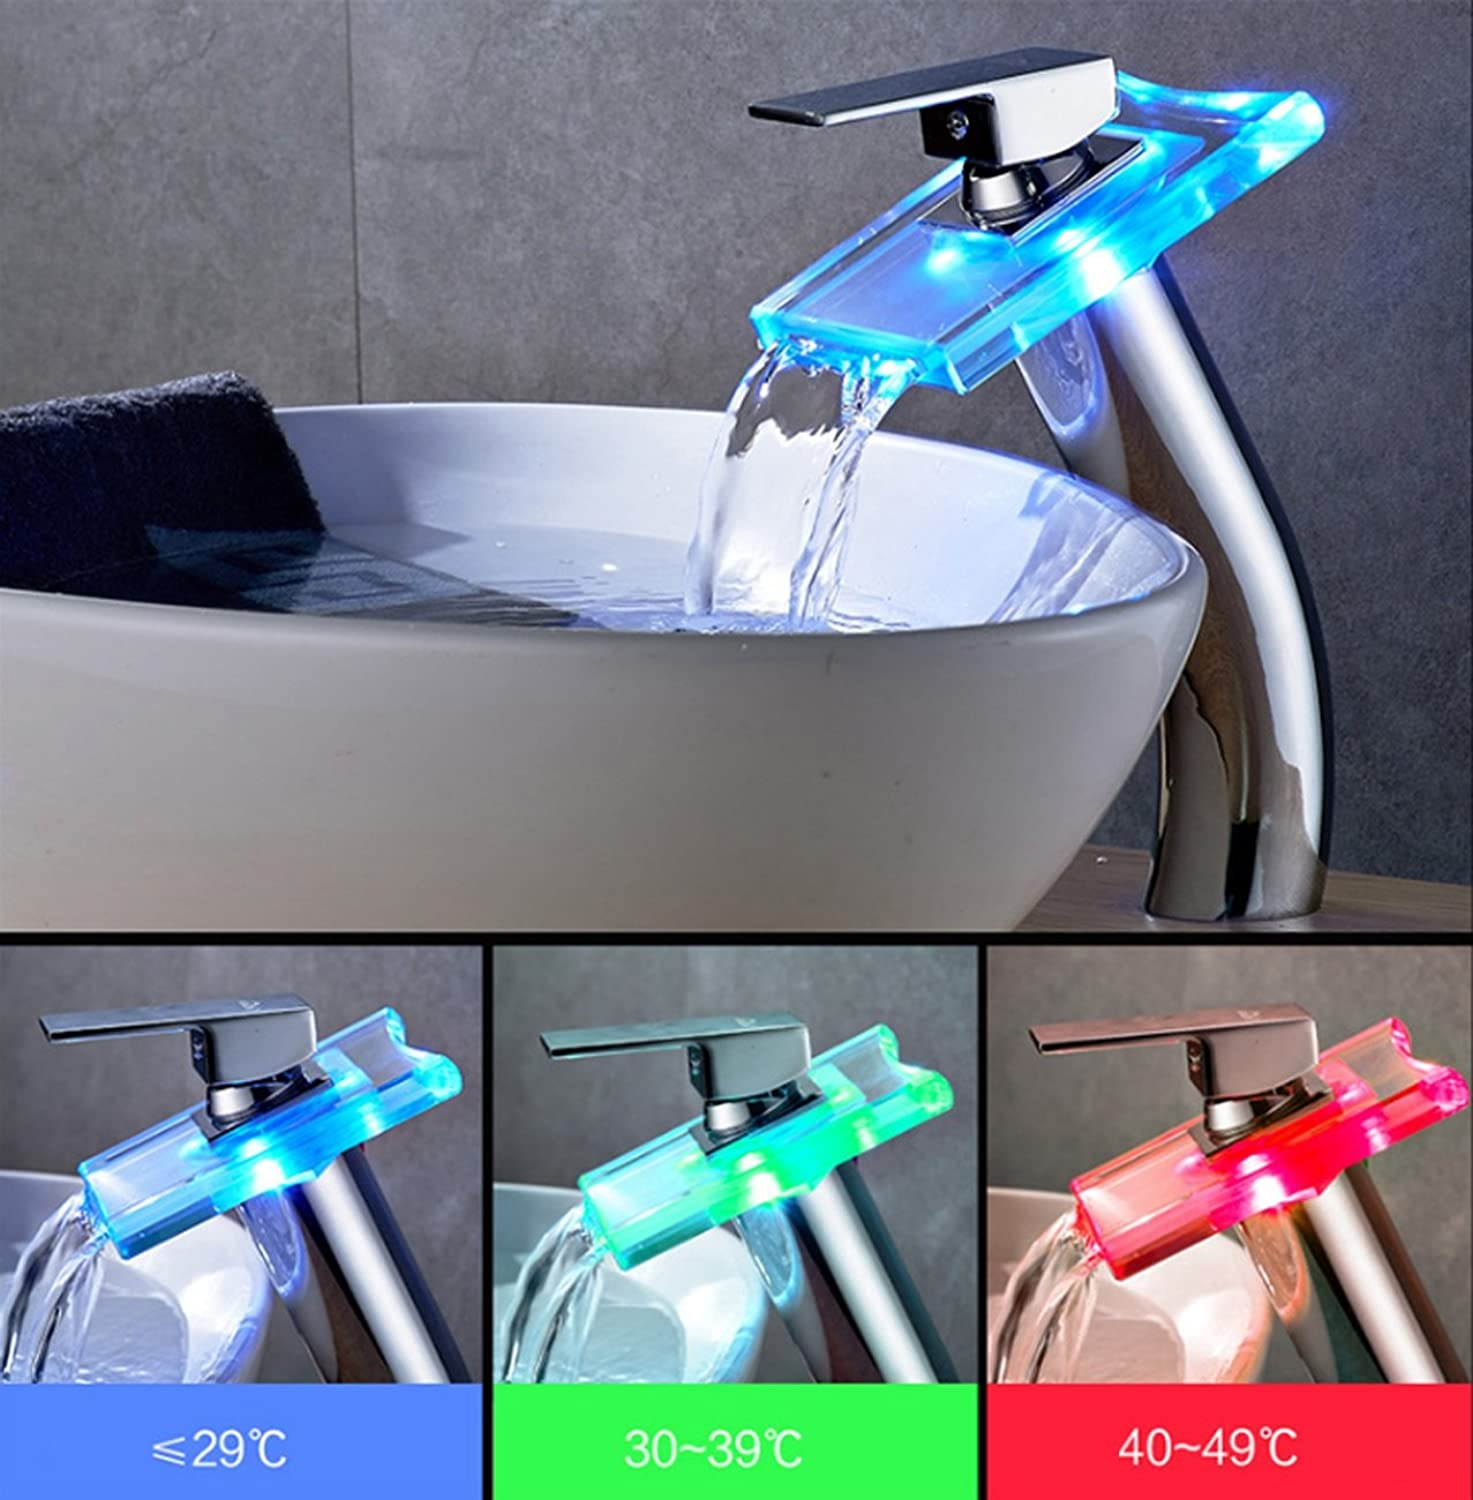 Colour Changing LED Light Waterfall Bathroom Sink Faucet,One Hole Single Handle Glass Waterfall Tap With Ceramic Valve,Bathroom Toilet Kitchen